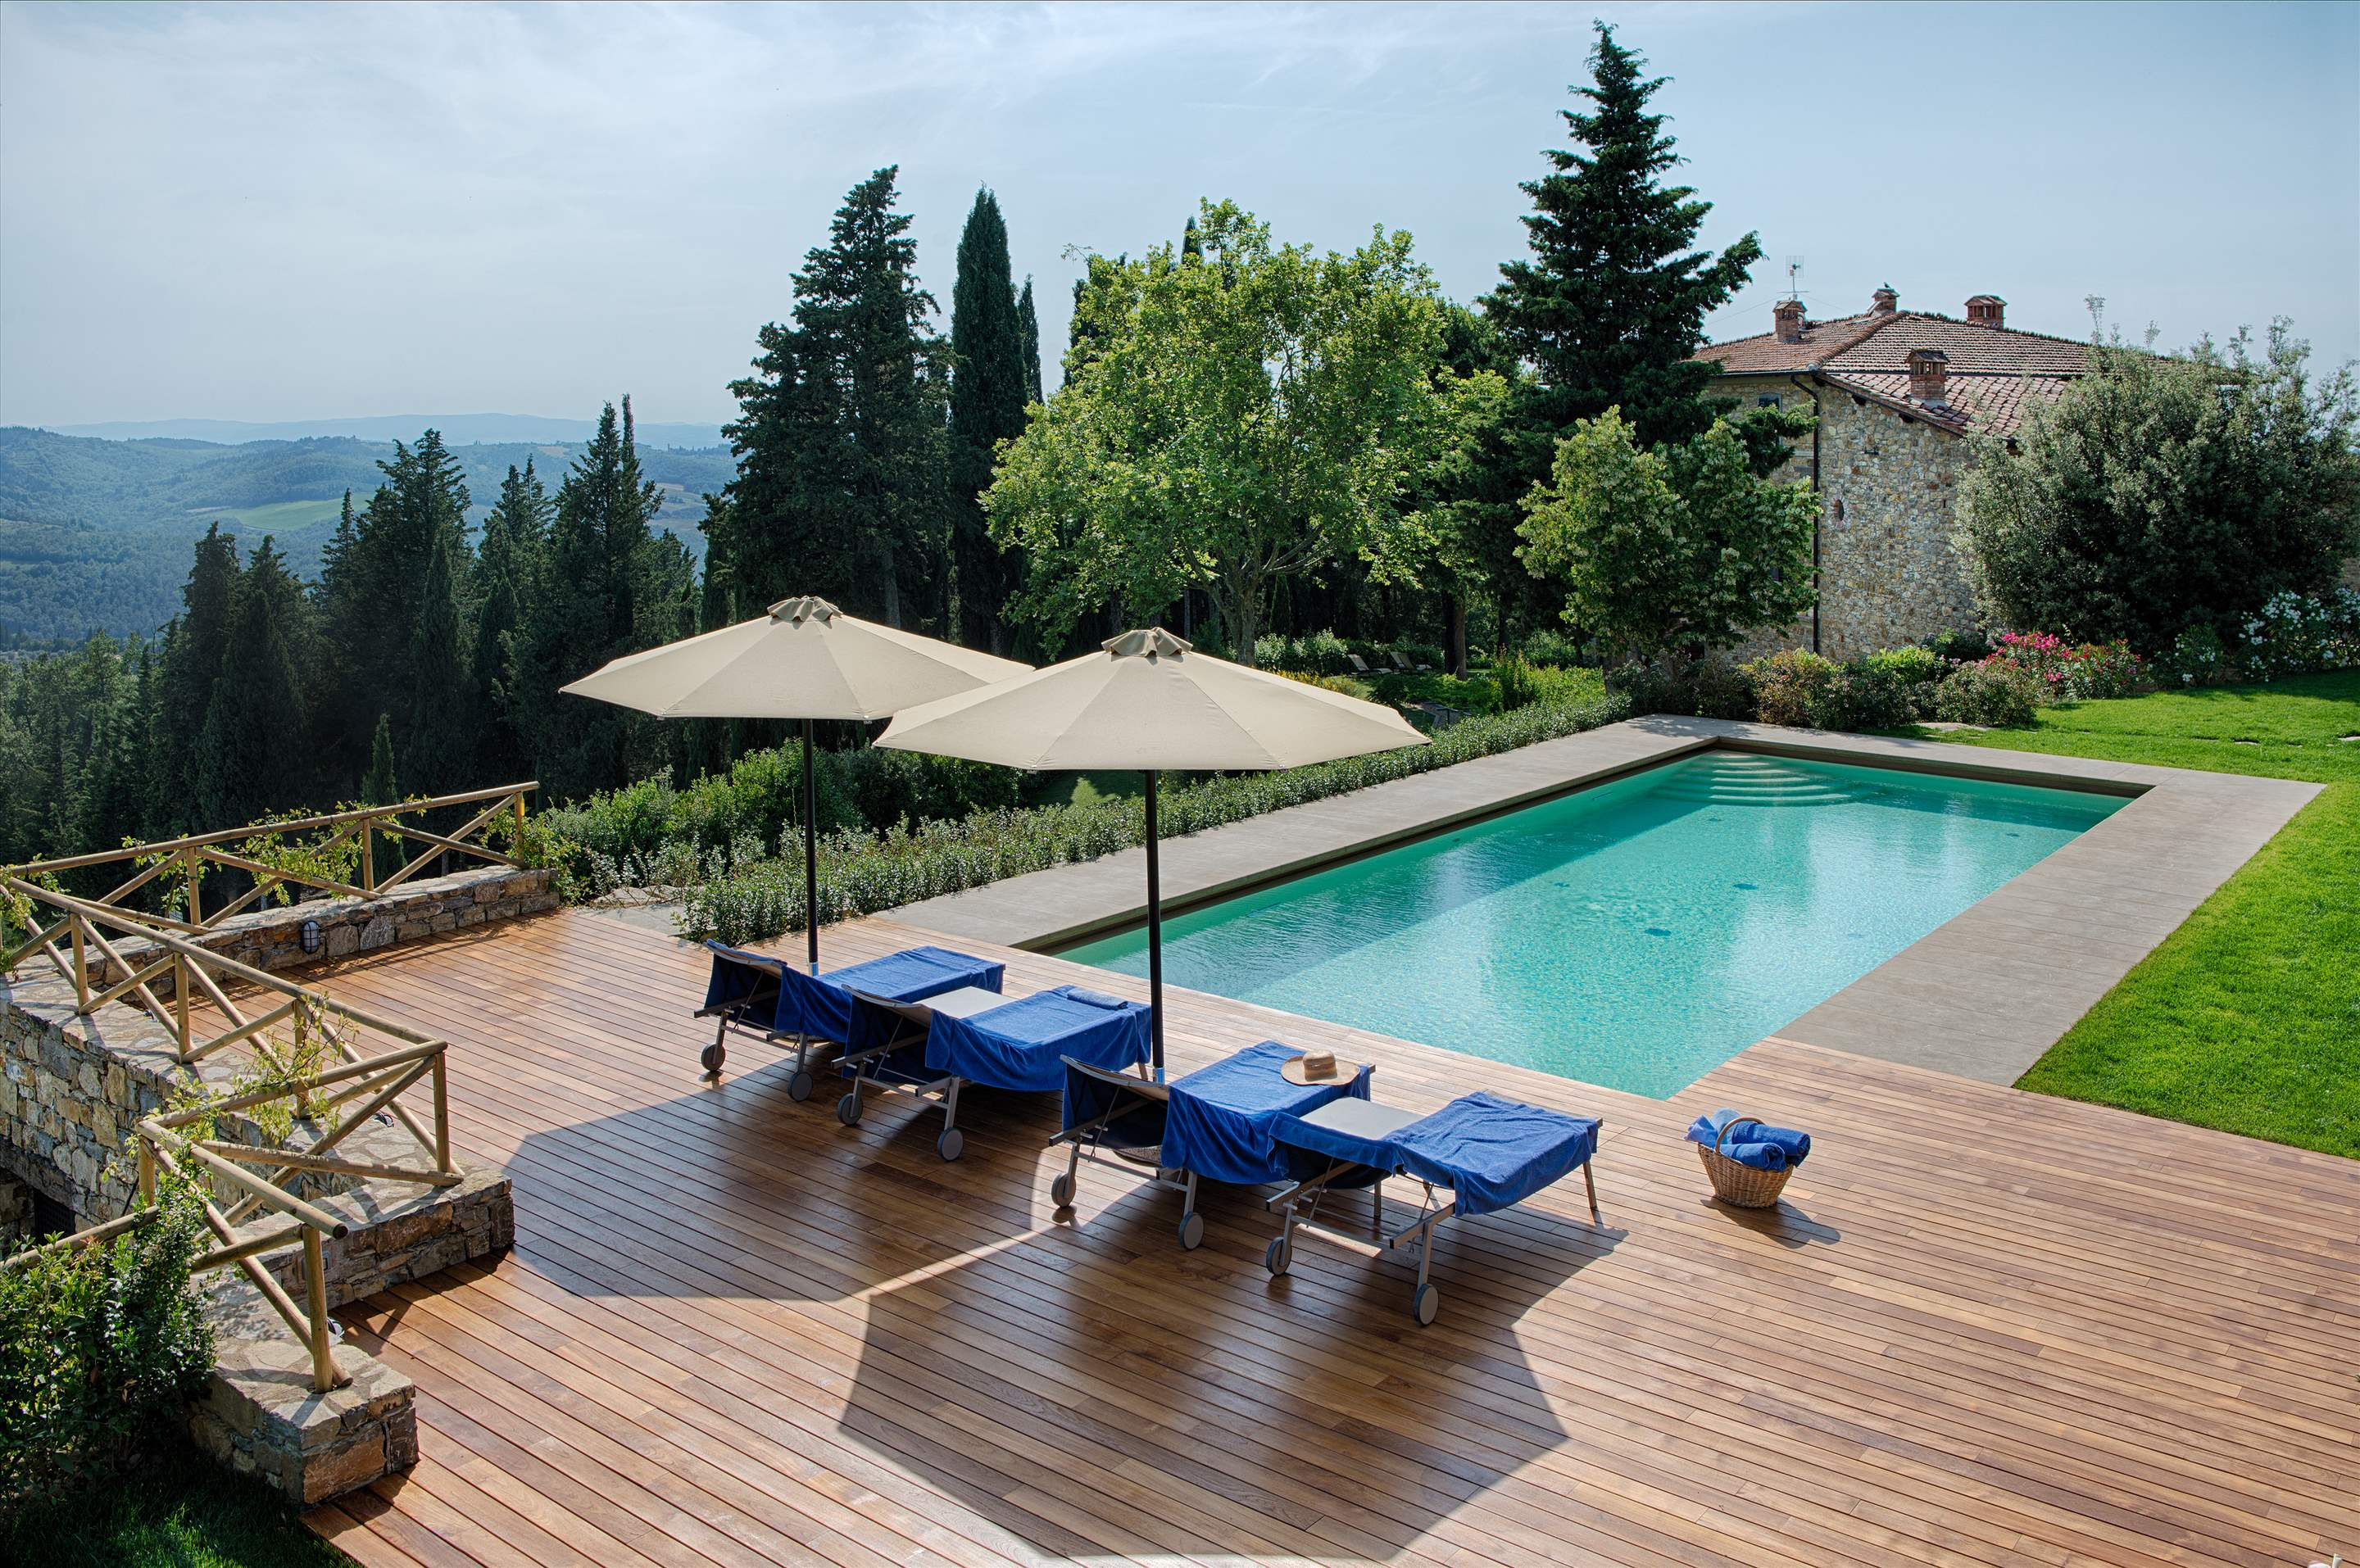 Villa La Valetta, 1 Bed Apt Uva, 1 bedroom villa in Chianti & Countryside, Tuscany Photo #1